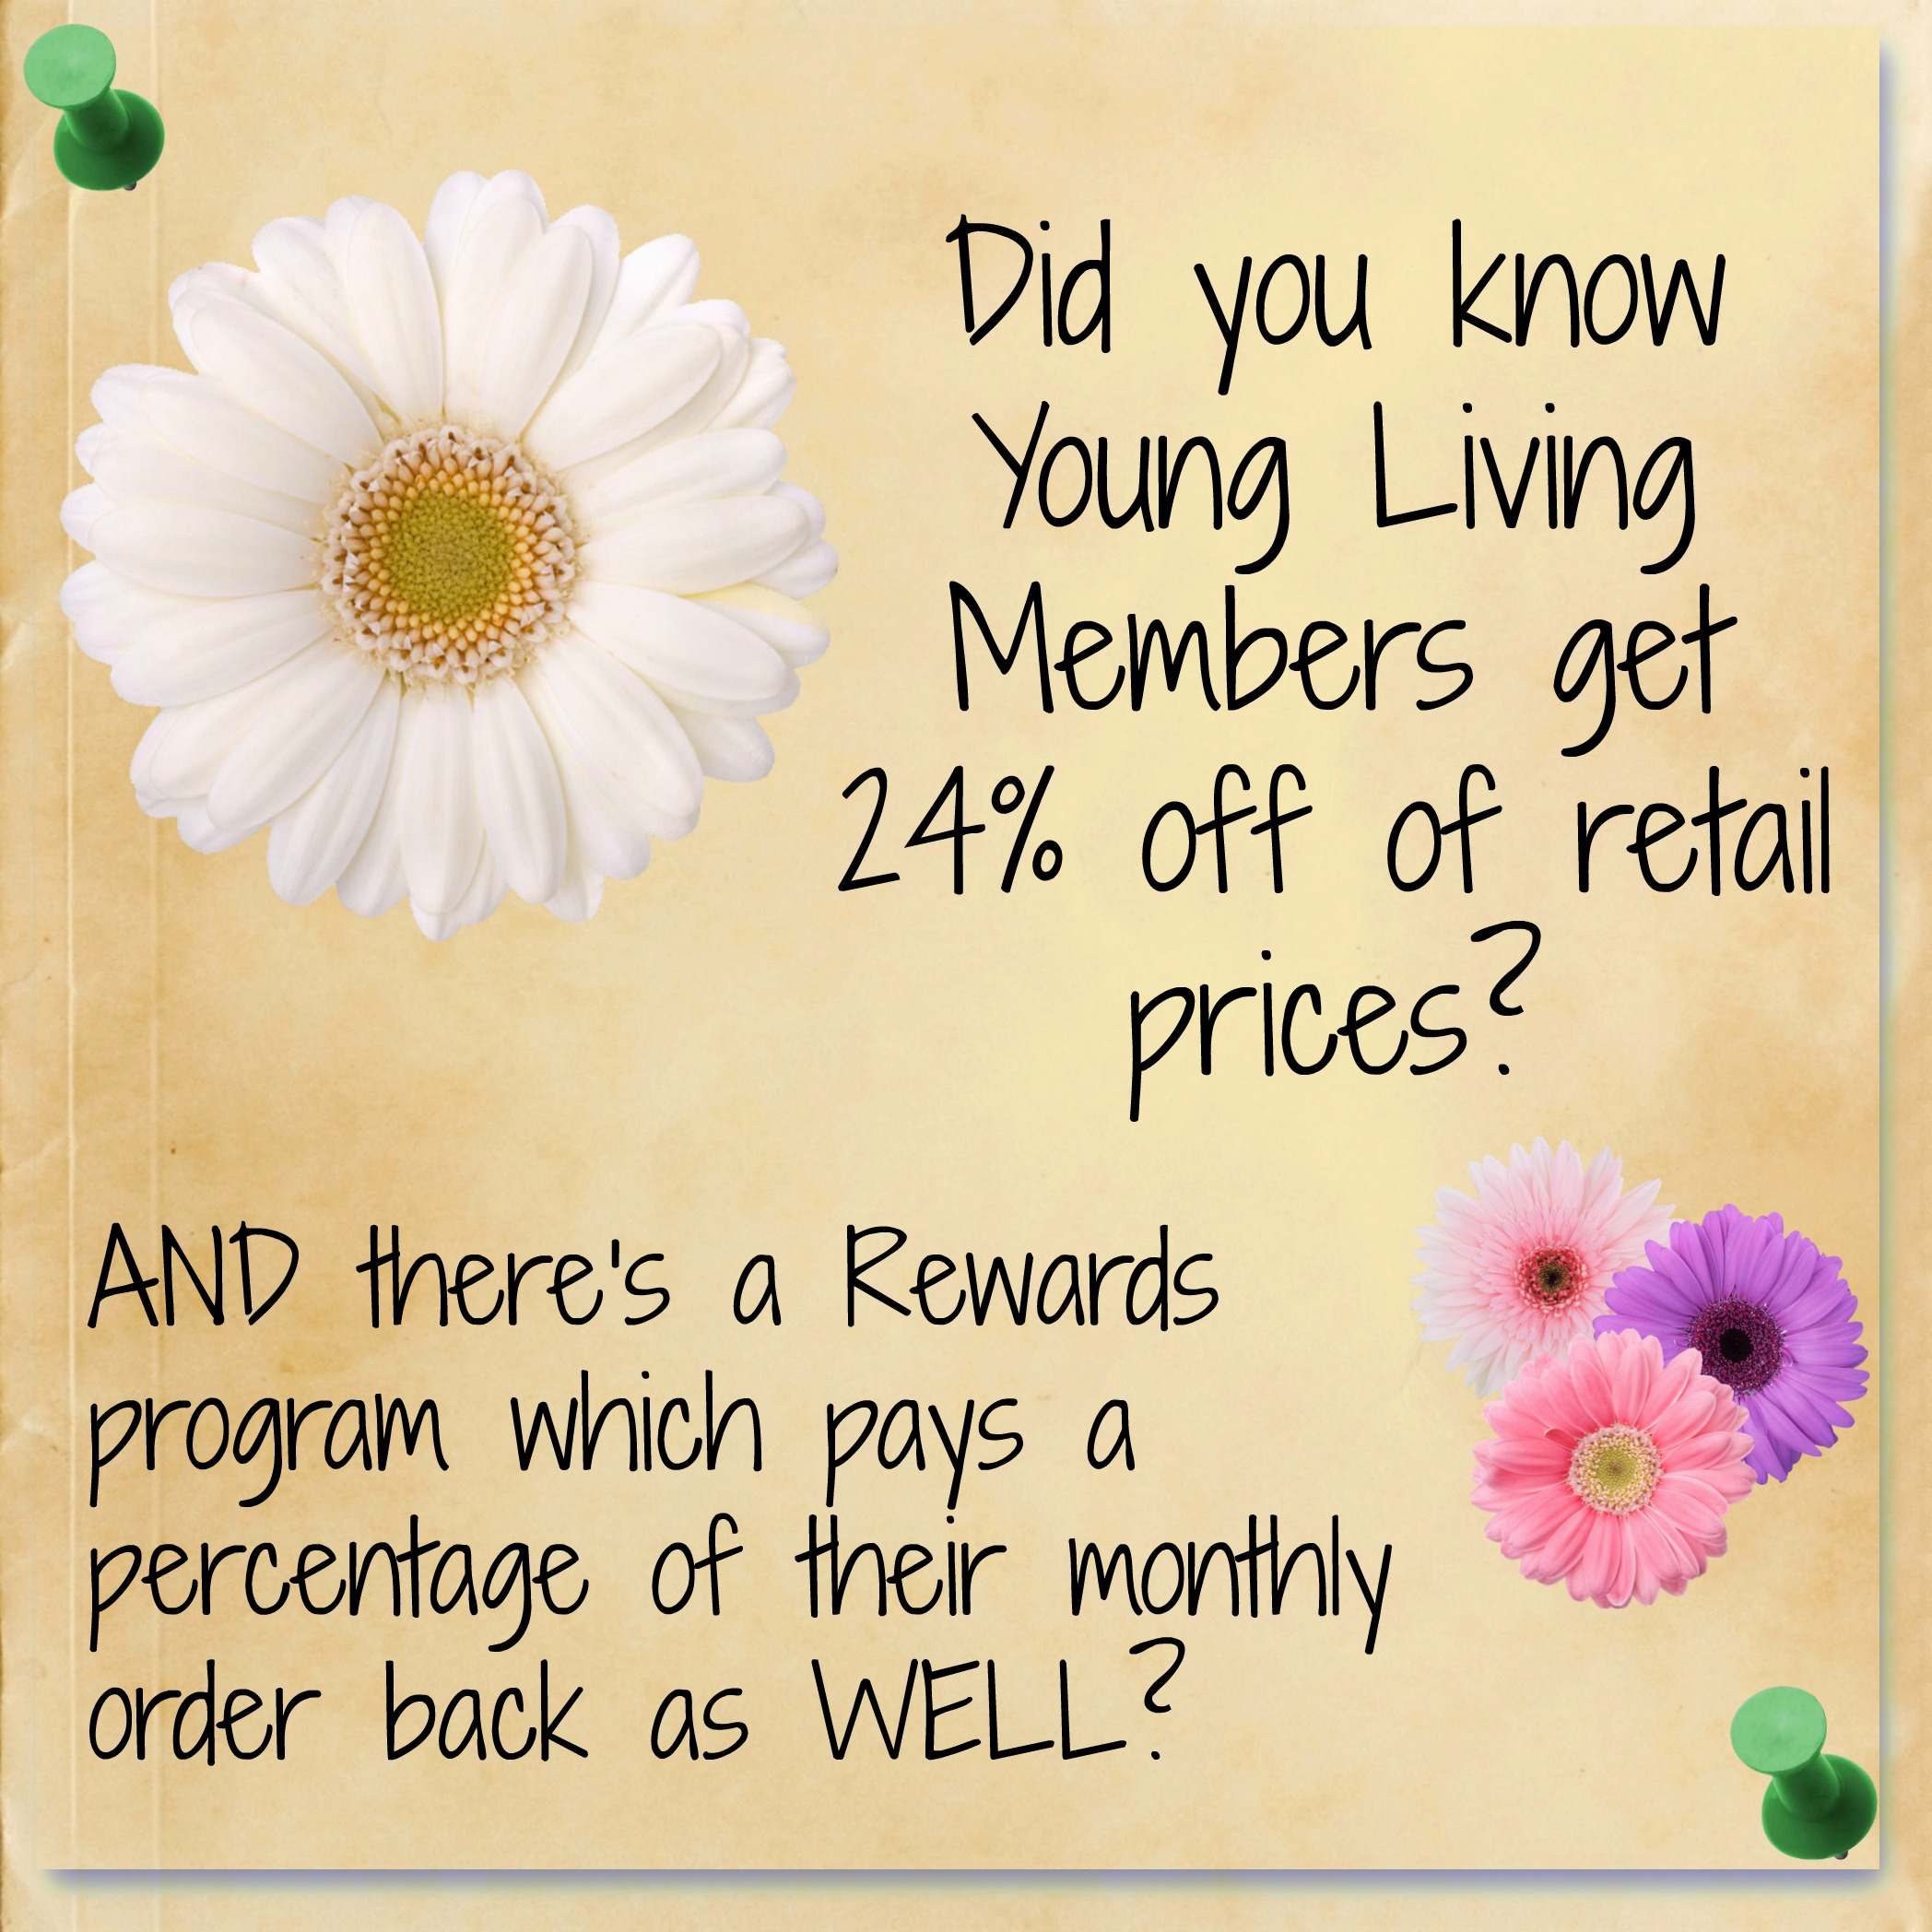 Members discounts are available. Click the 'About Young Living' tab to find out more.